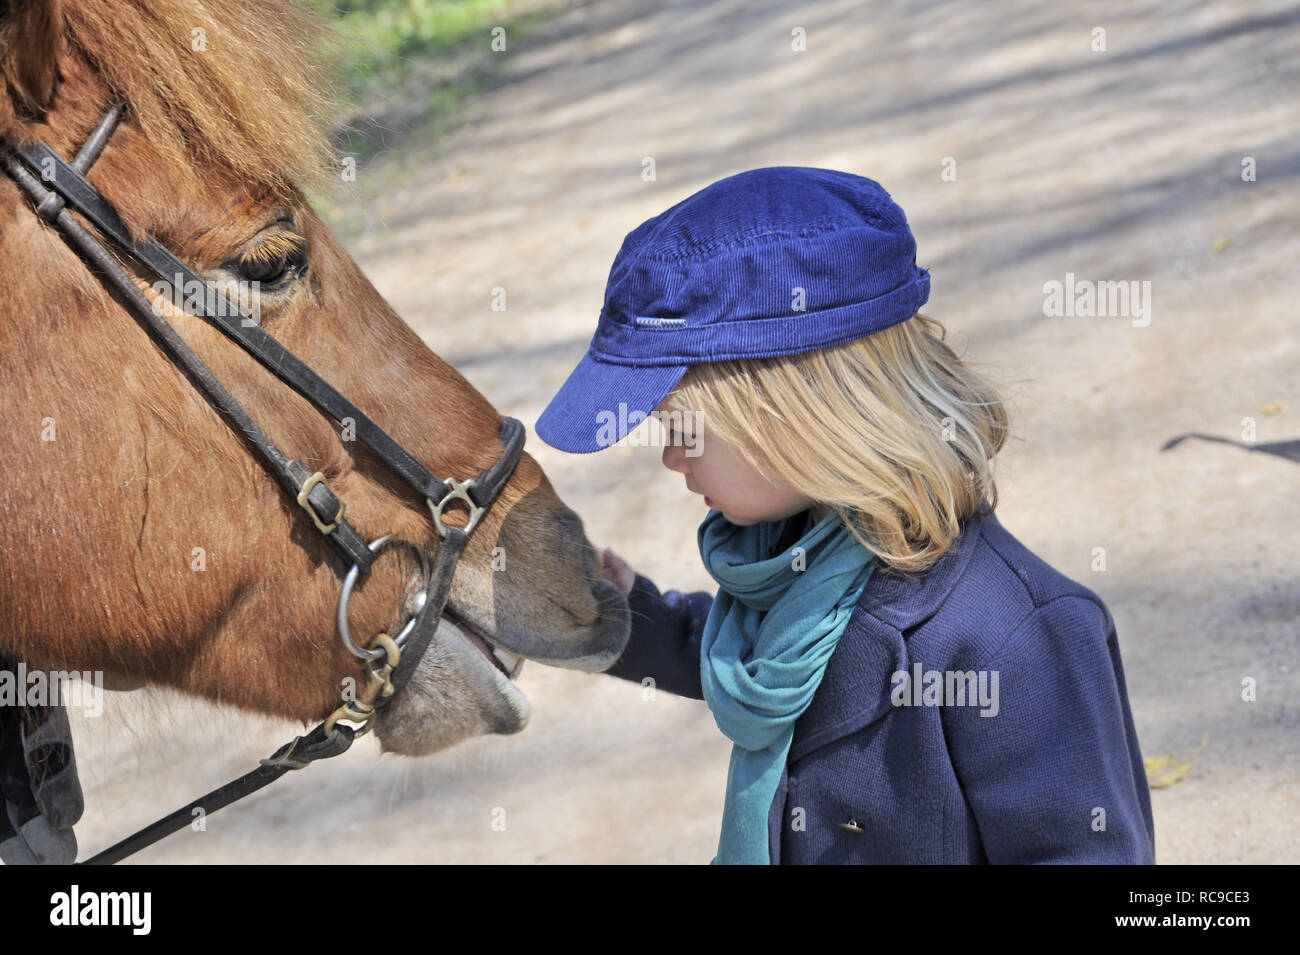 kleines Kind streichelt Pferd, 2 Jahre alt | little child strokes horse, 2 years old - Stock Image